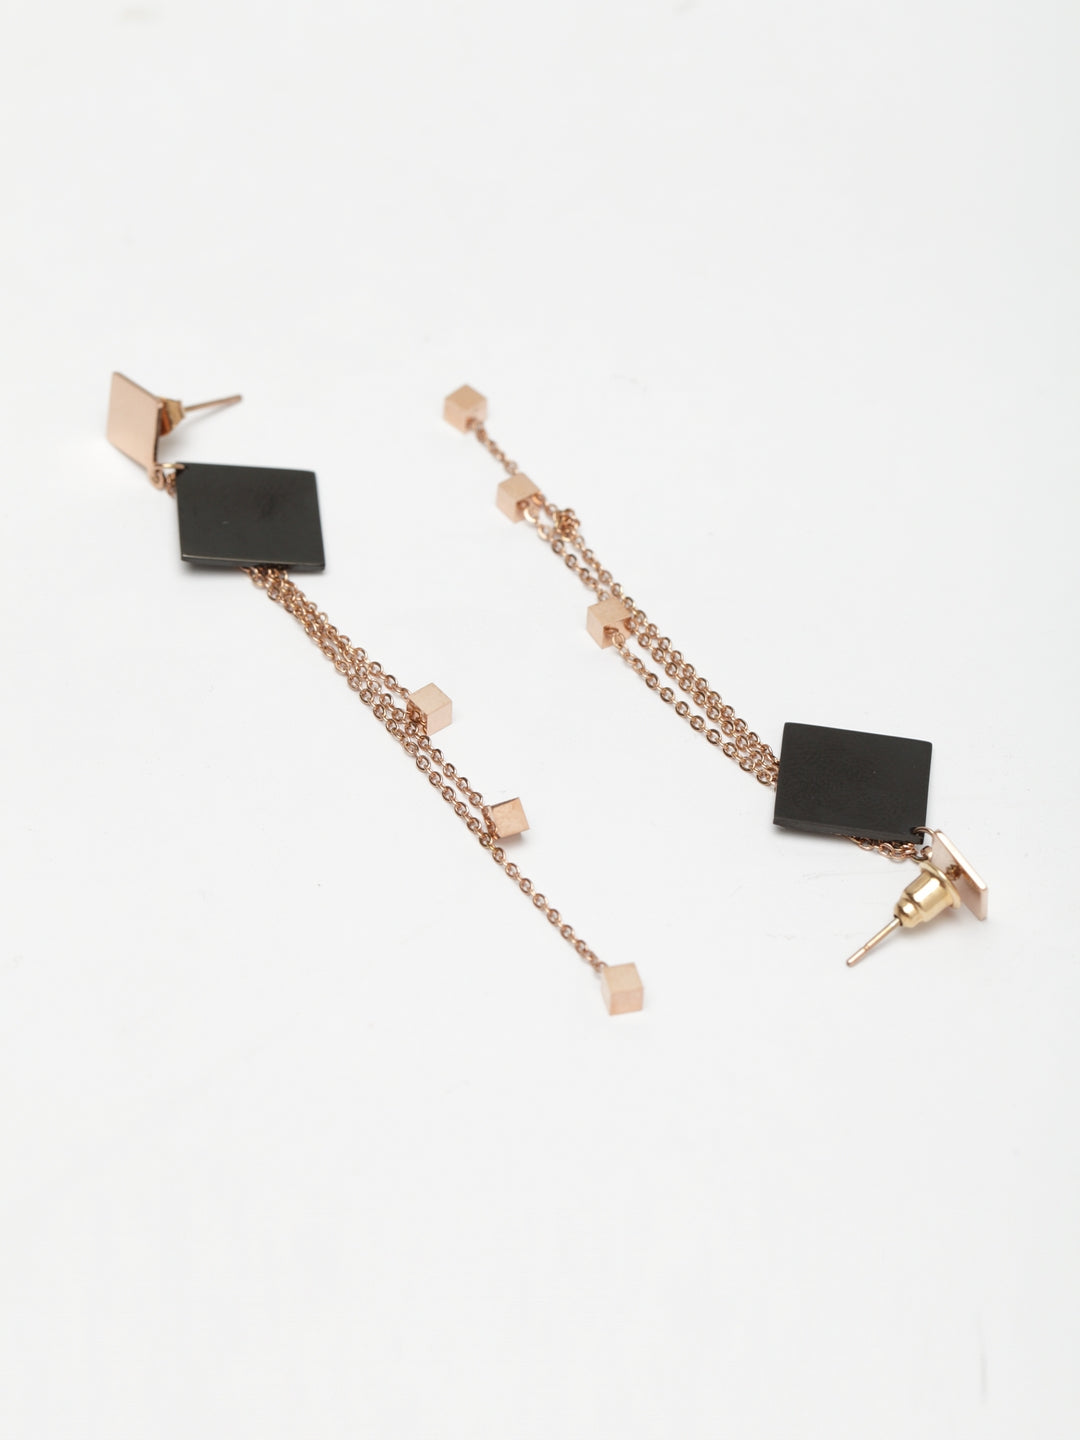 Avant-Garde Paris Geometric Drop Pierced Earrings